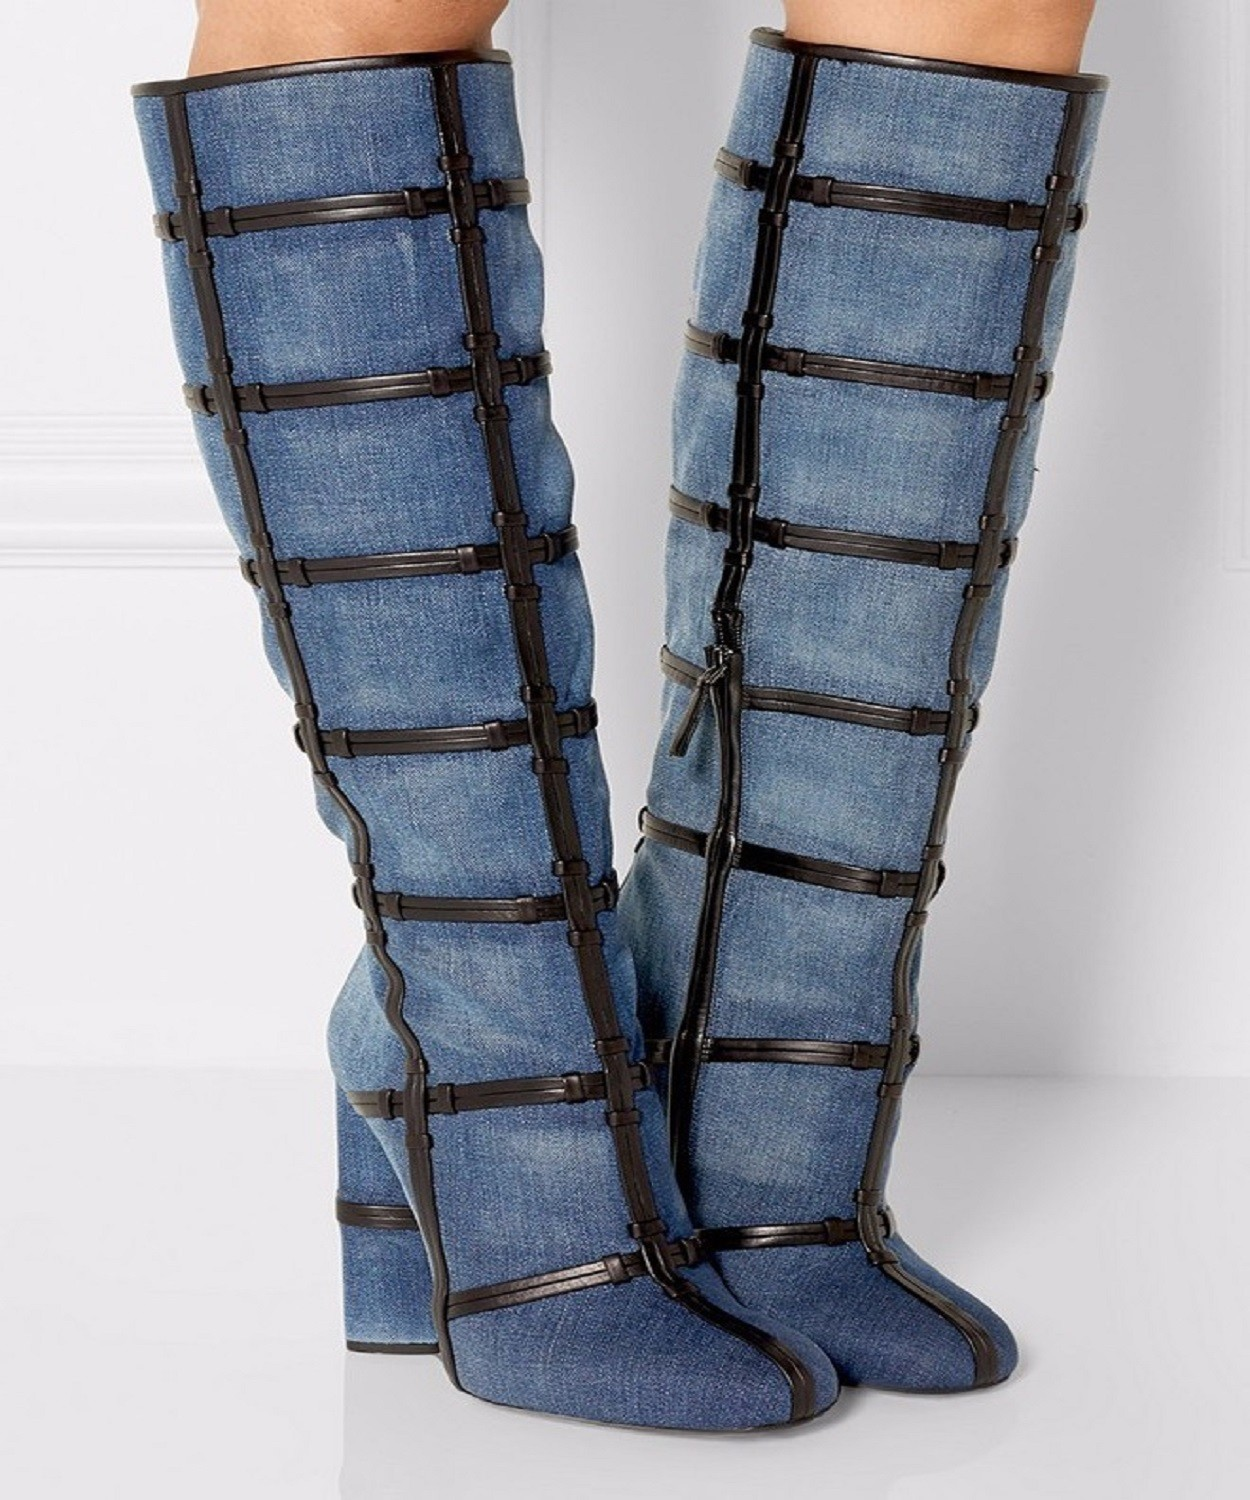 Denim Boots Knee High Boots Women's High Heel Thick Heel Cross Knot Leather Stripe Decoration Shoes Woman Long Boot Botas Mujer